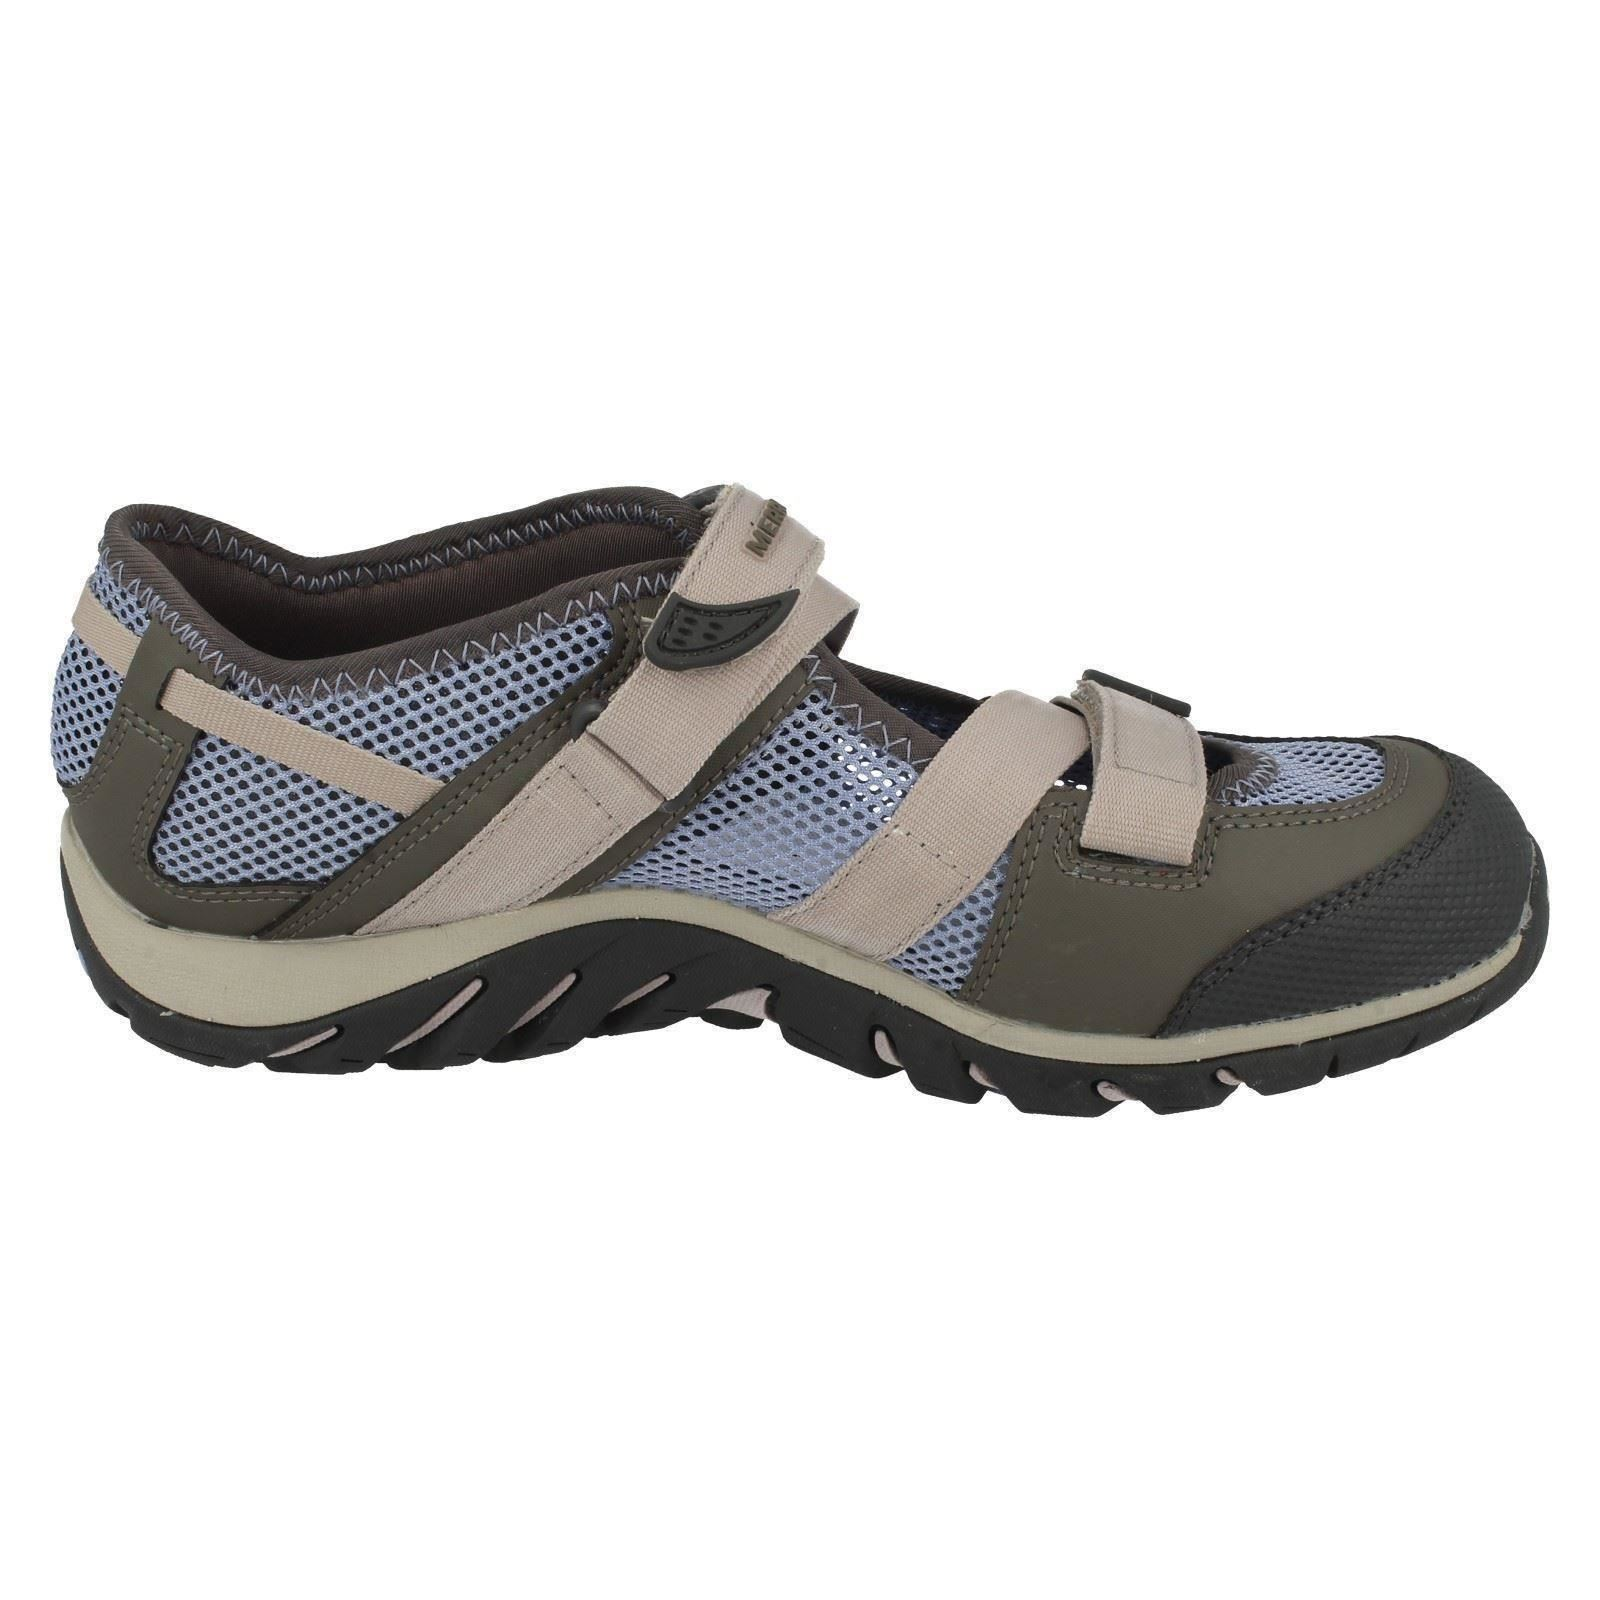 Ladies-Merrell-Buckle-Fastened-Casual-Shoes-Waterpro-Crystal-J82284 thumbnail 7